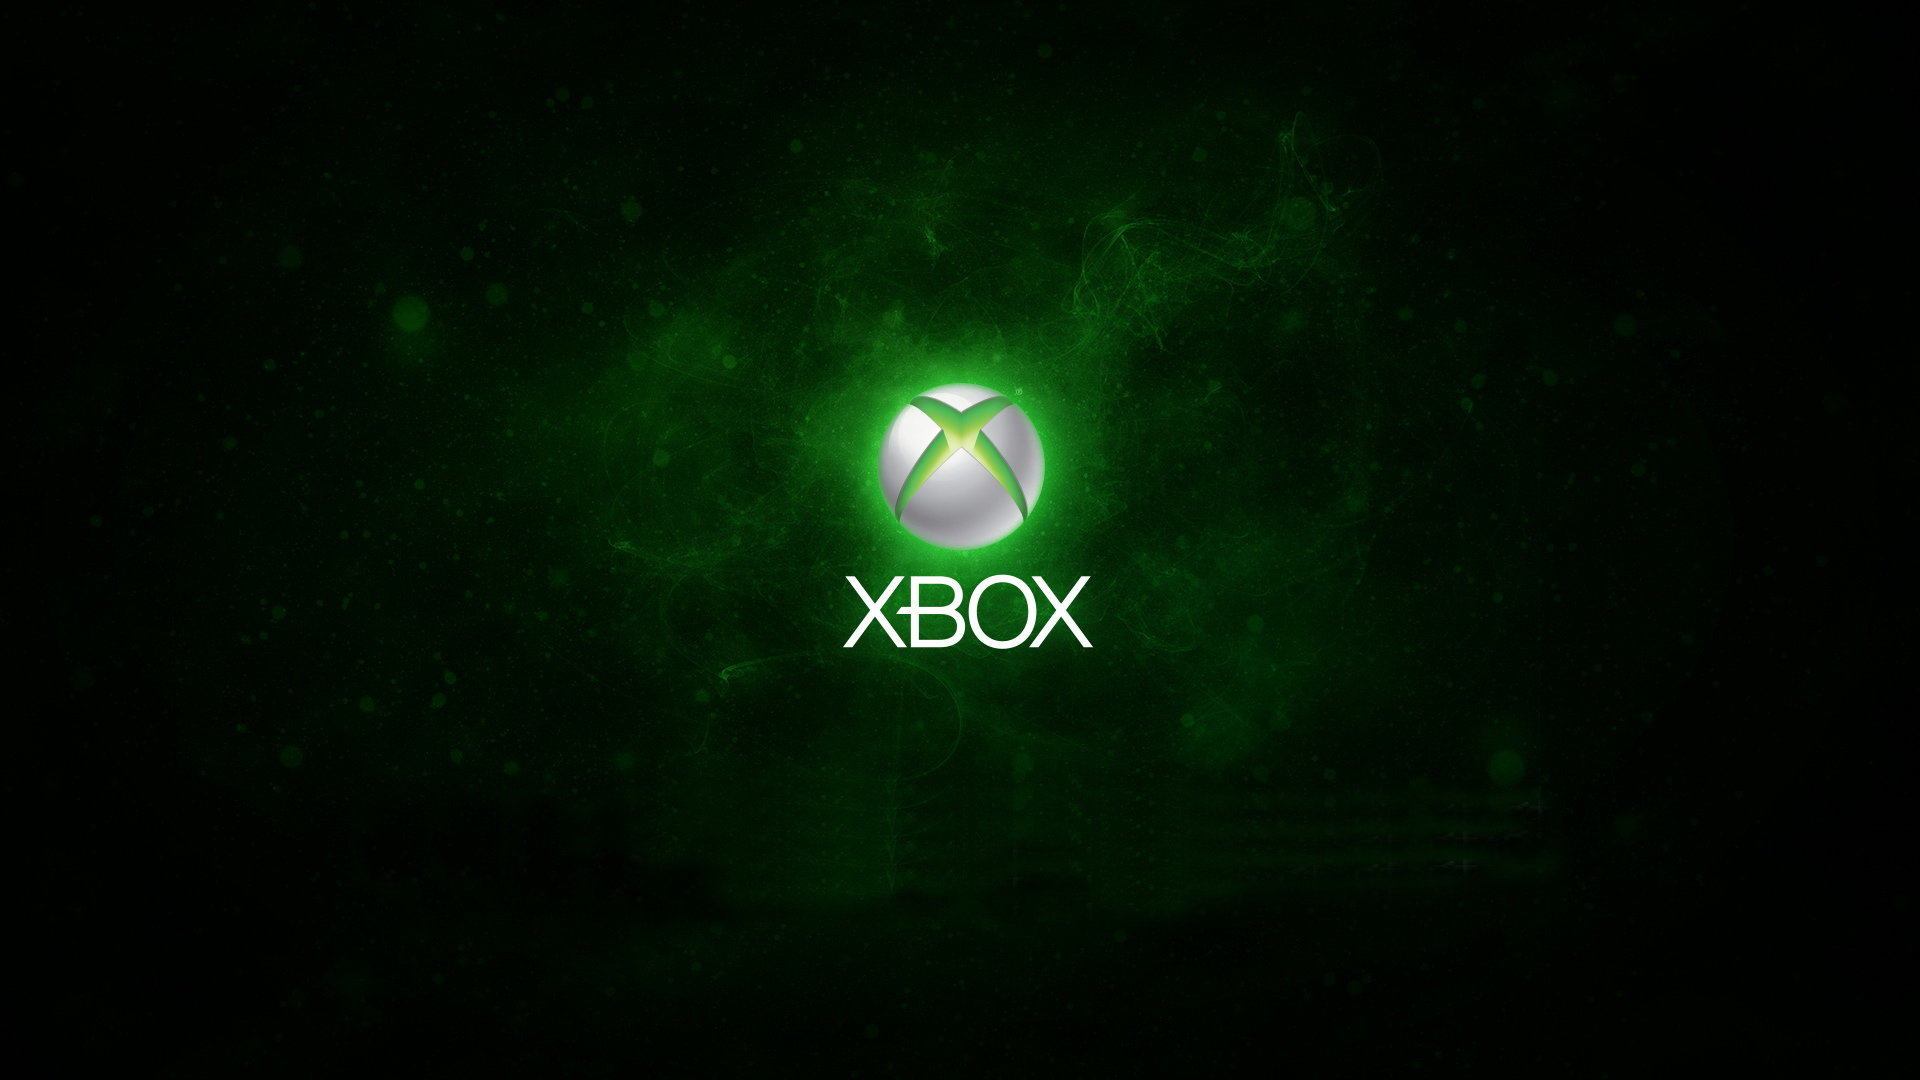 Xbox wallpaper 1920x1080 68059 - Xbox one wallpaper 1920x1080 ...